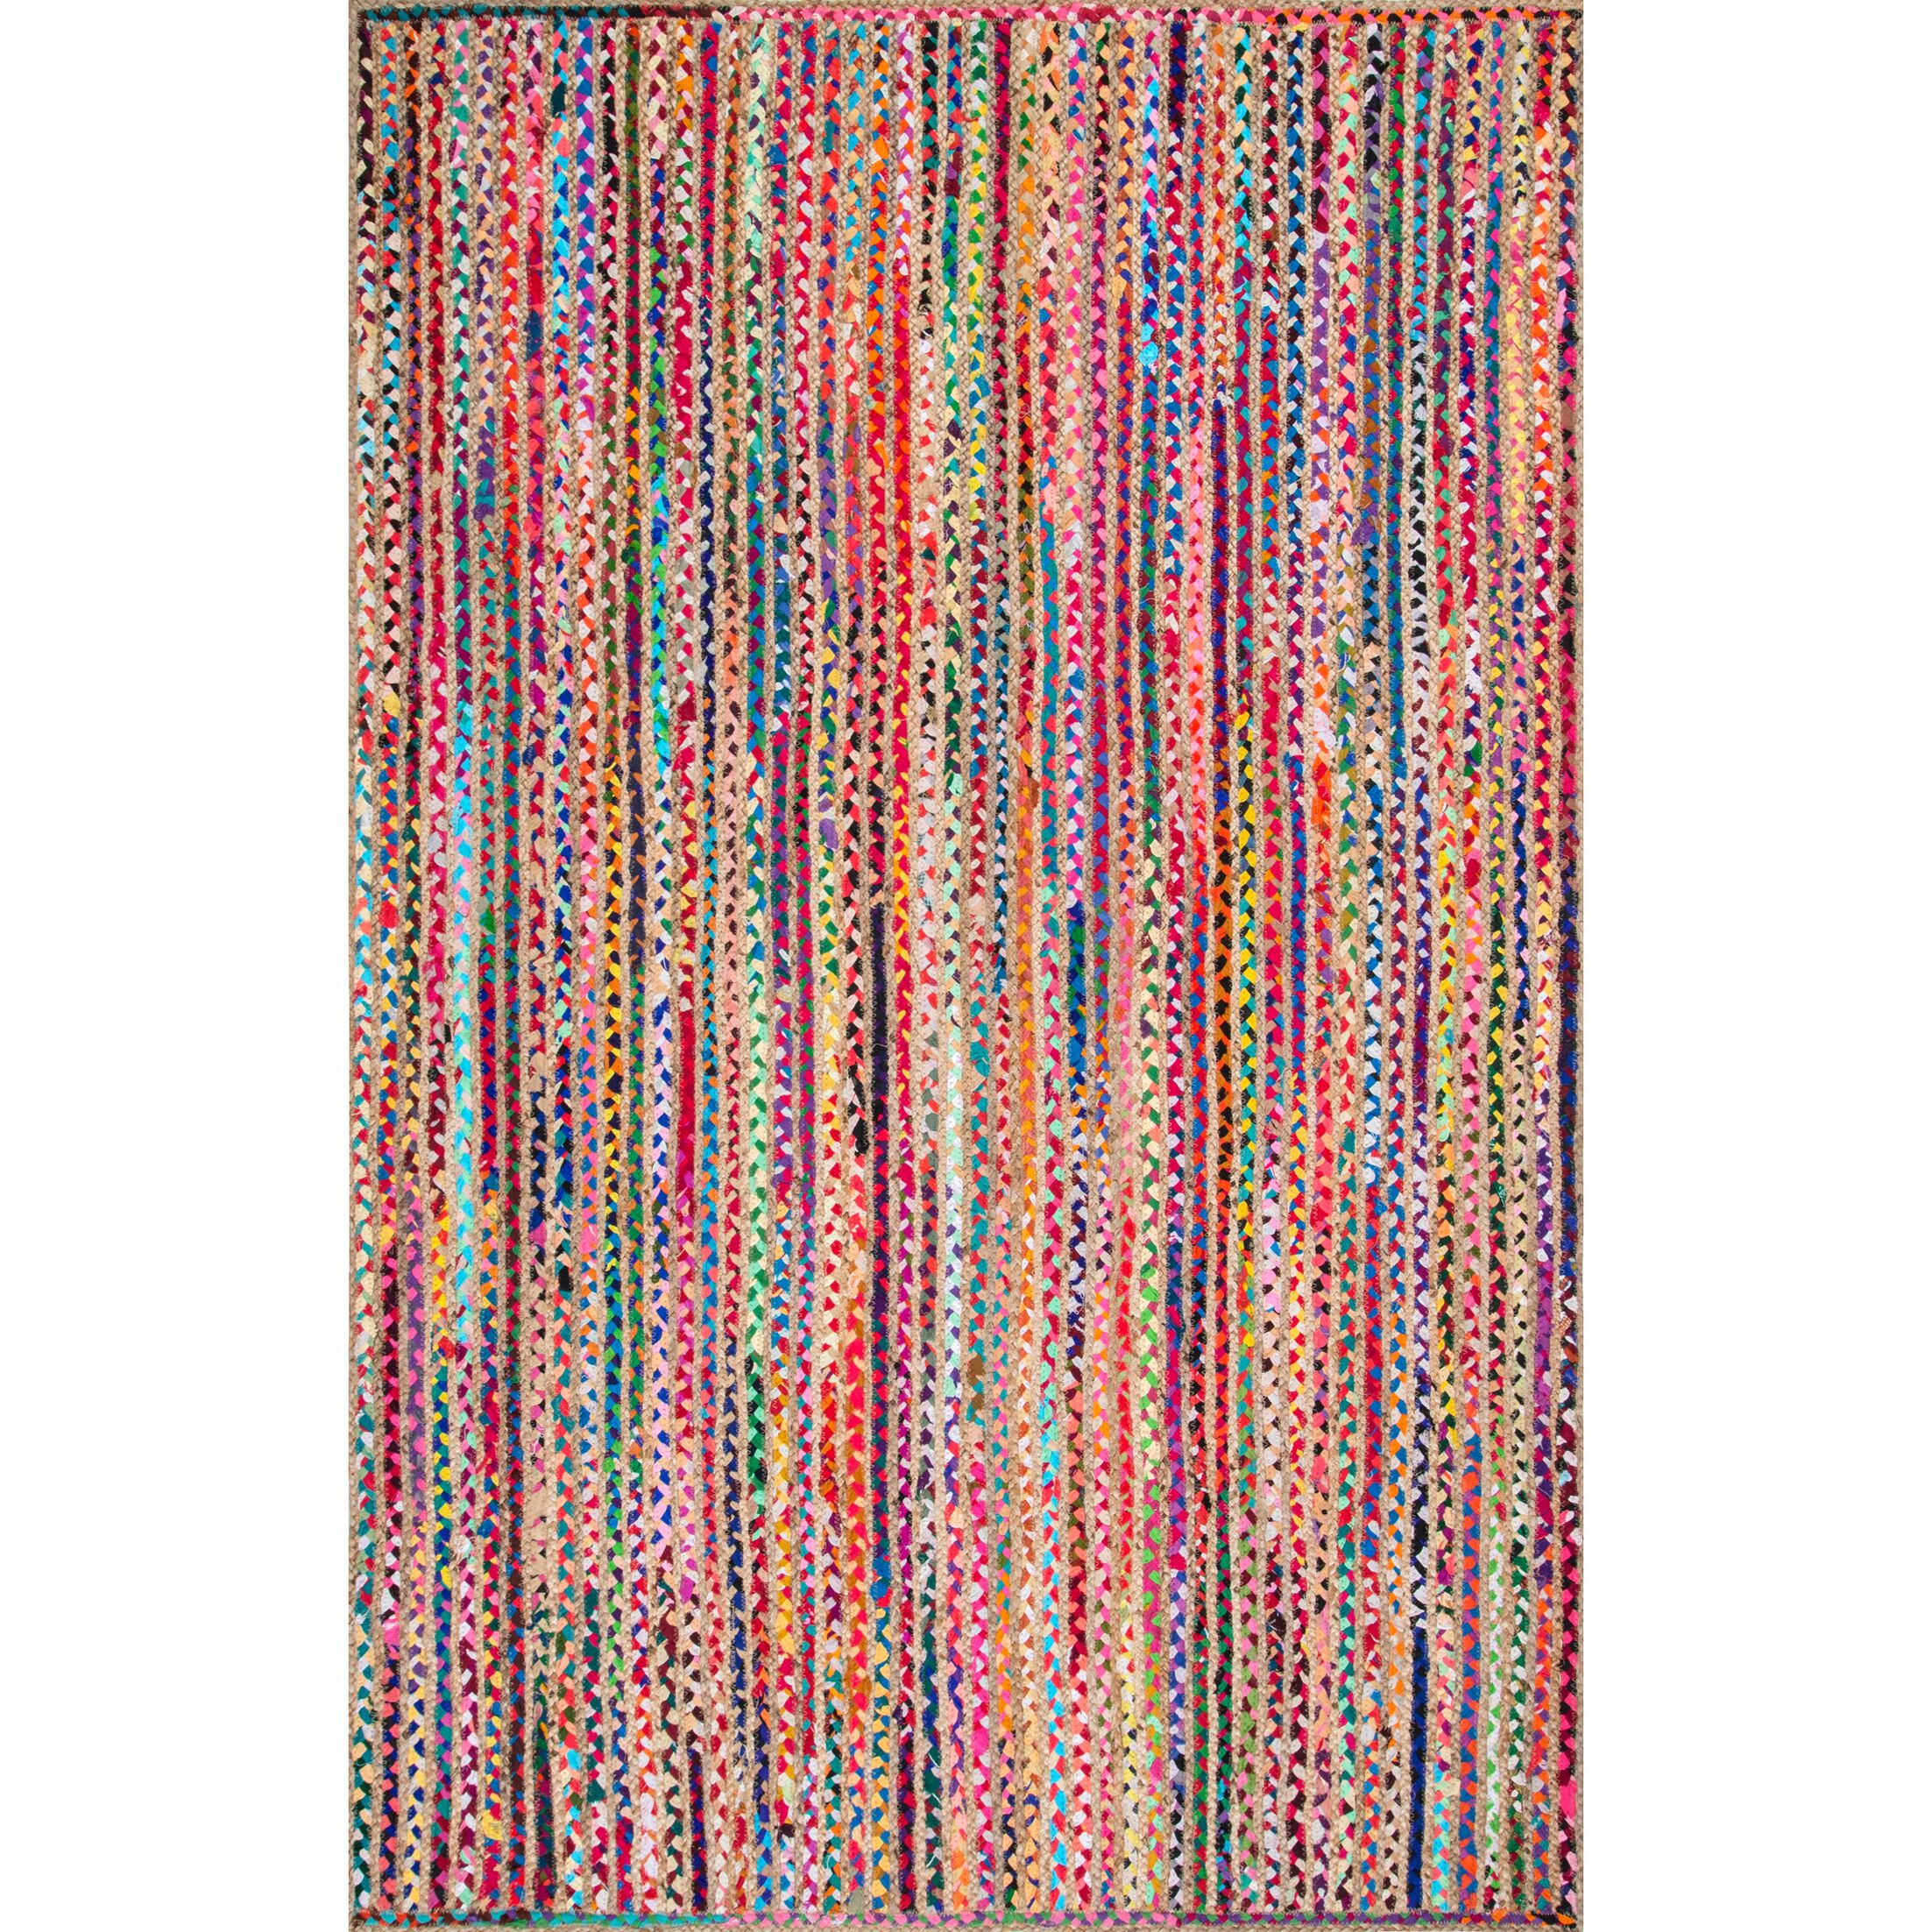 Sumitra Pink/Blue Area Rug Rug Size: Rectangle 6' x 9'